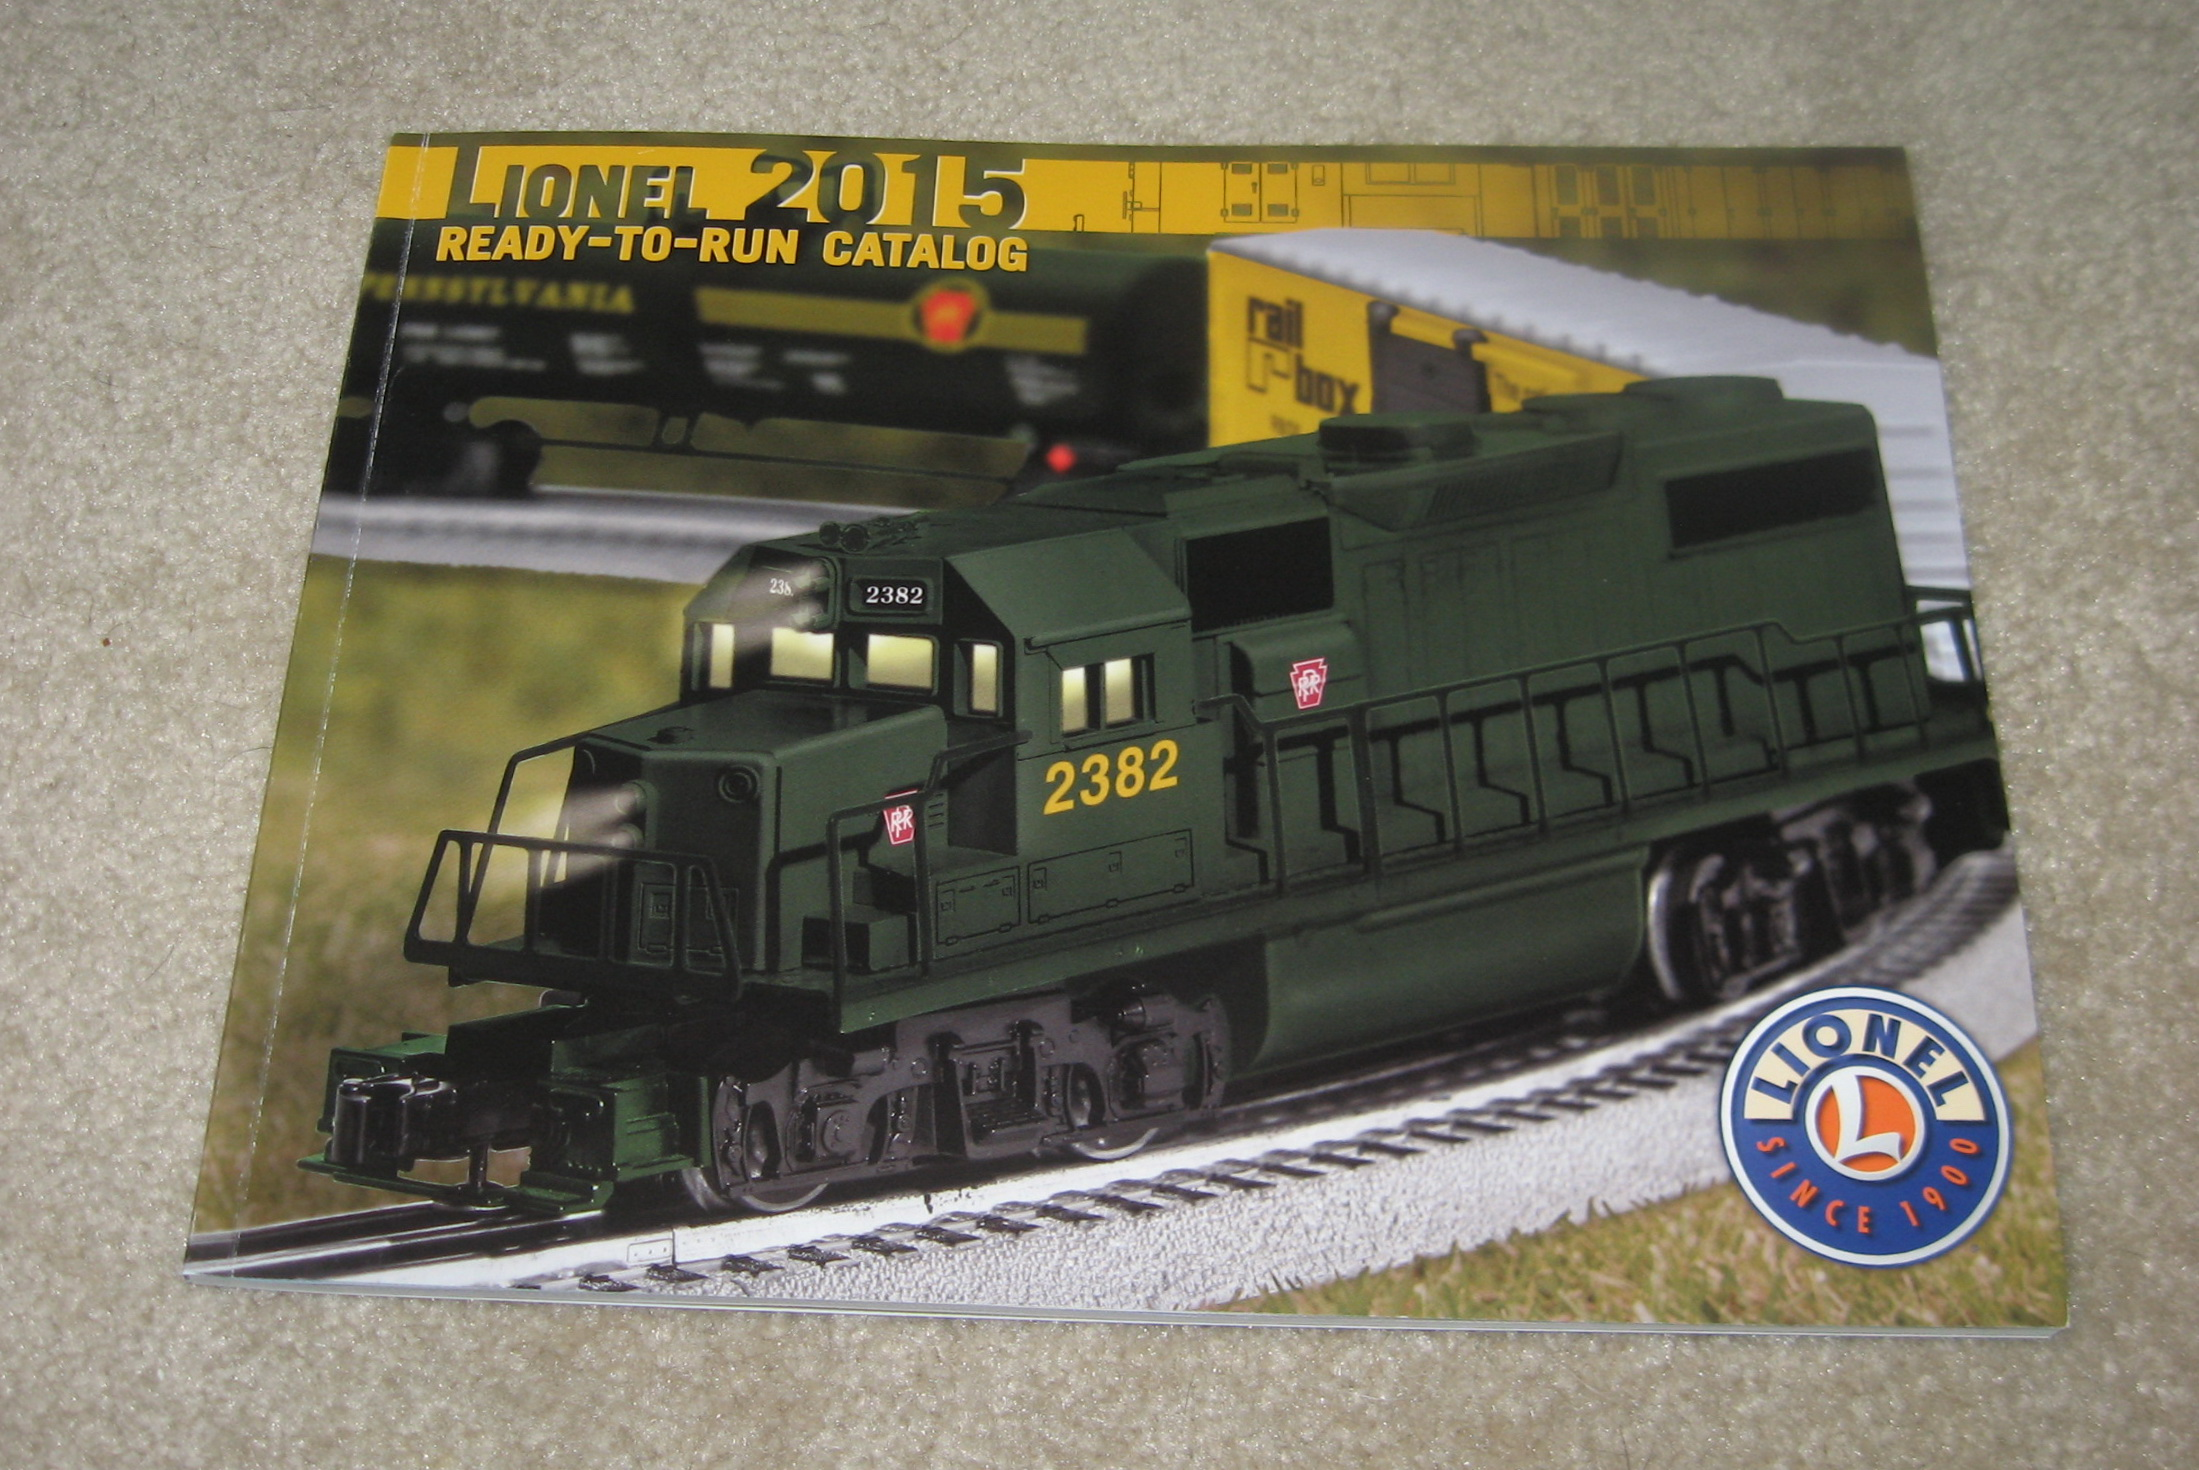 2015 Lionel Trains Ready To Run Catalog. Mint Condition.